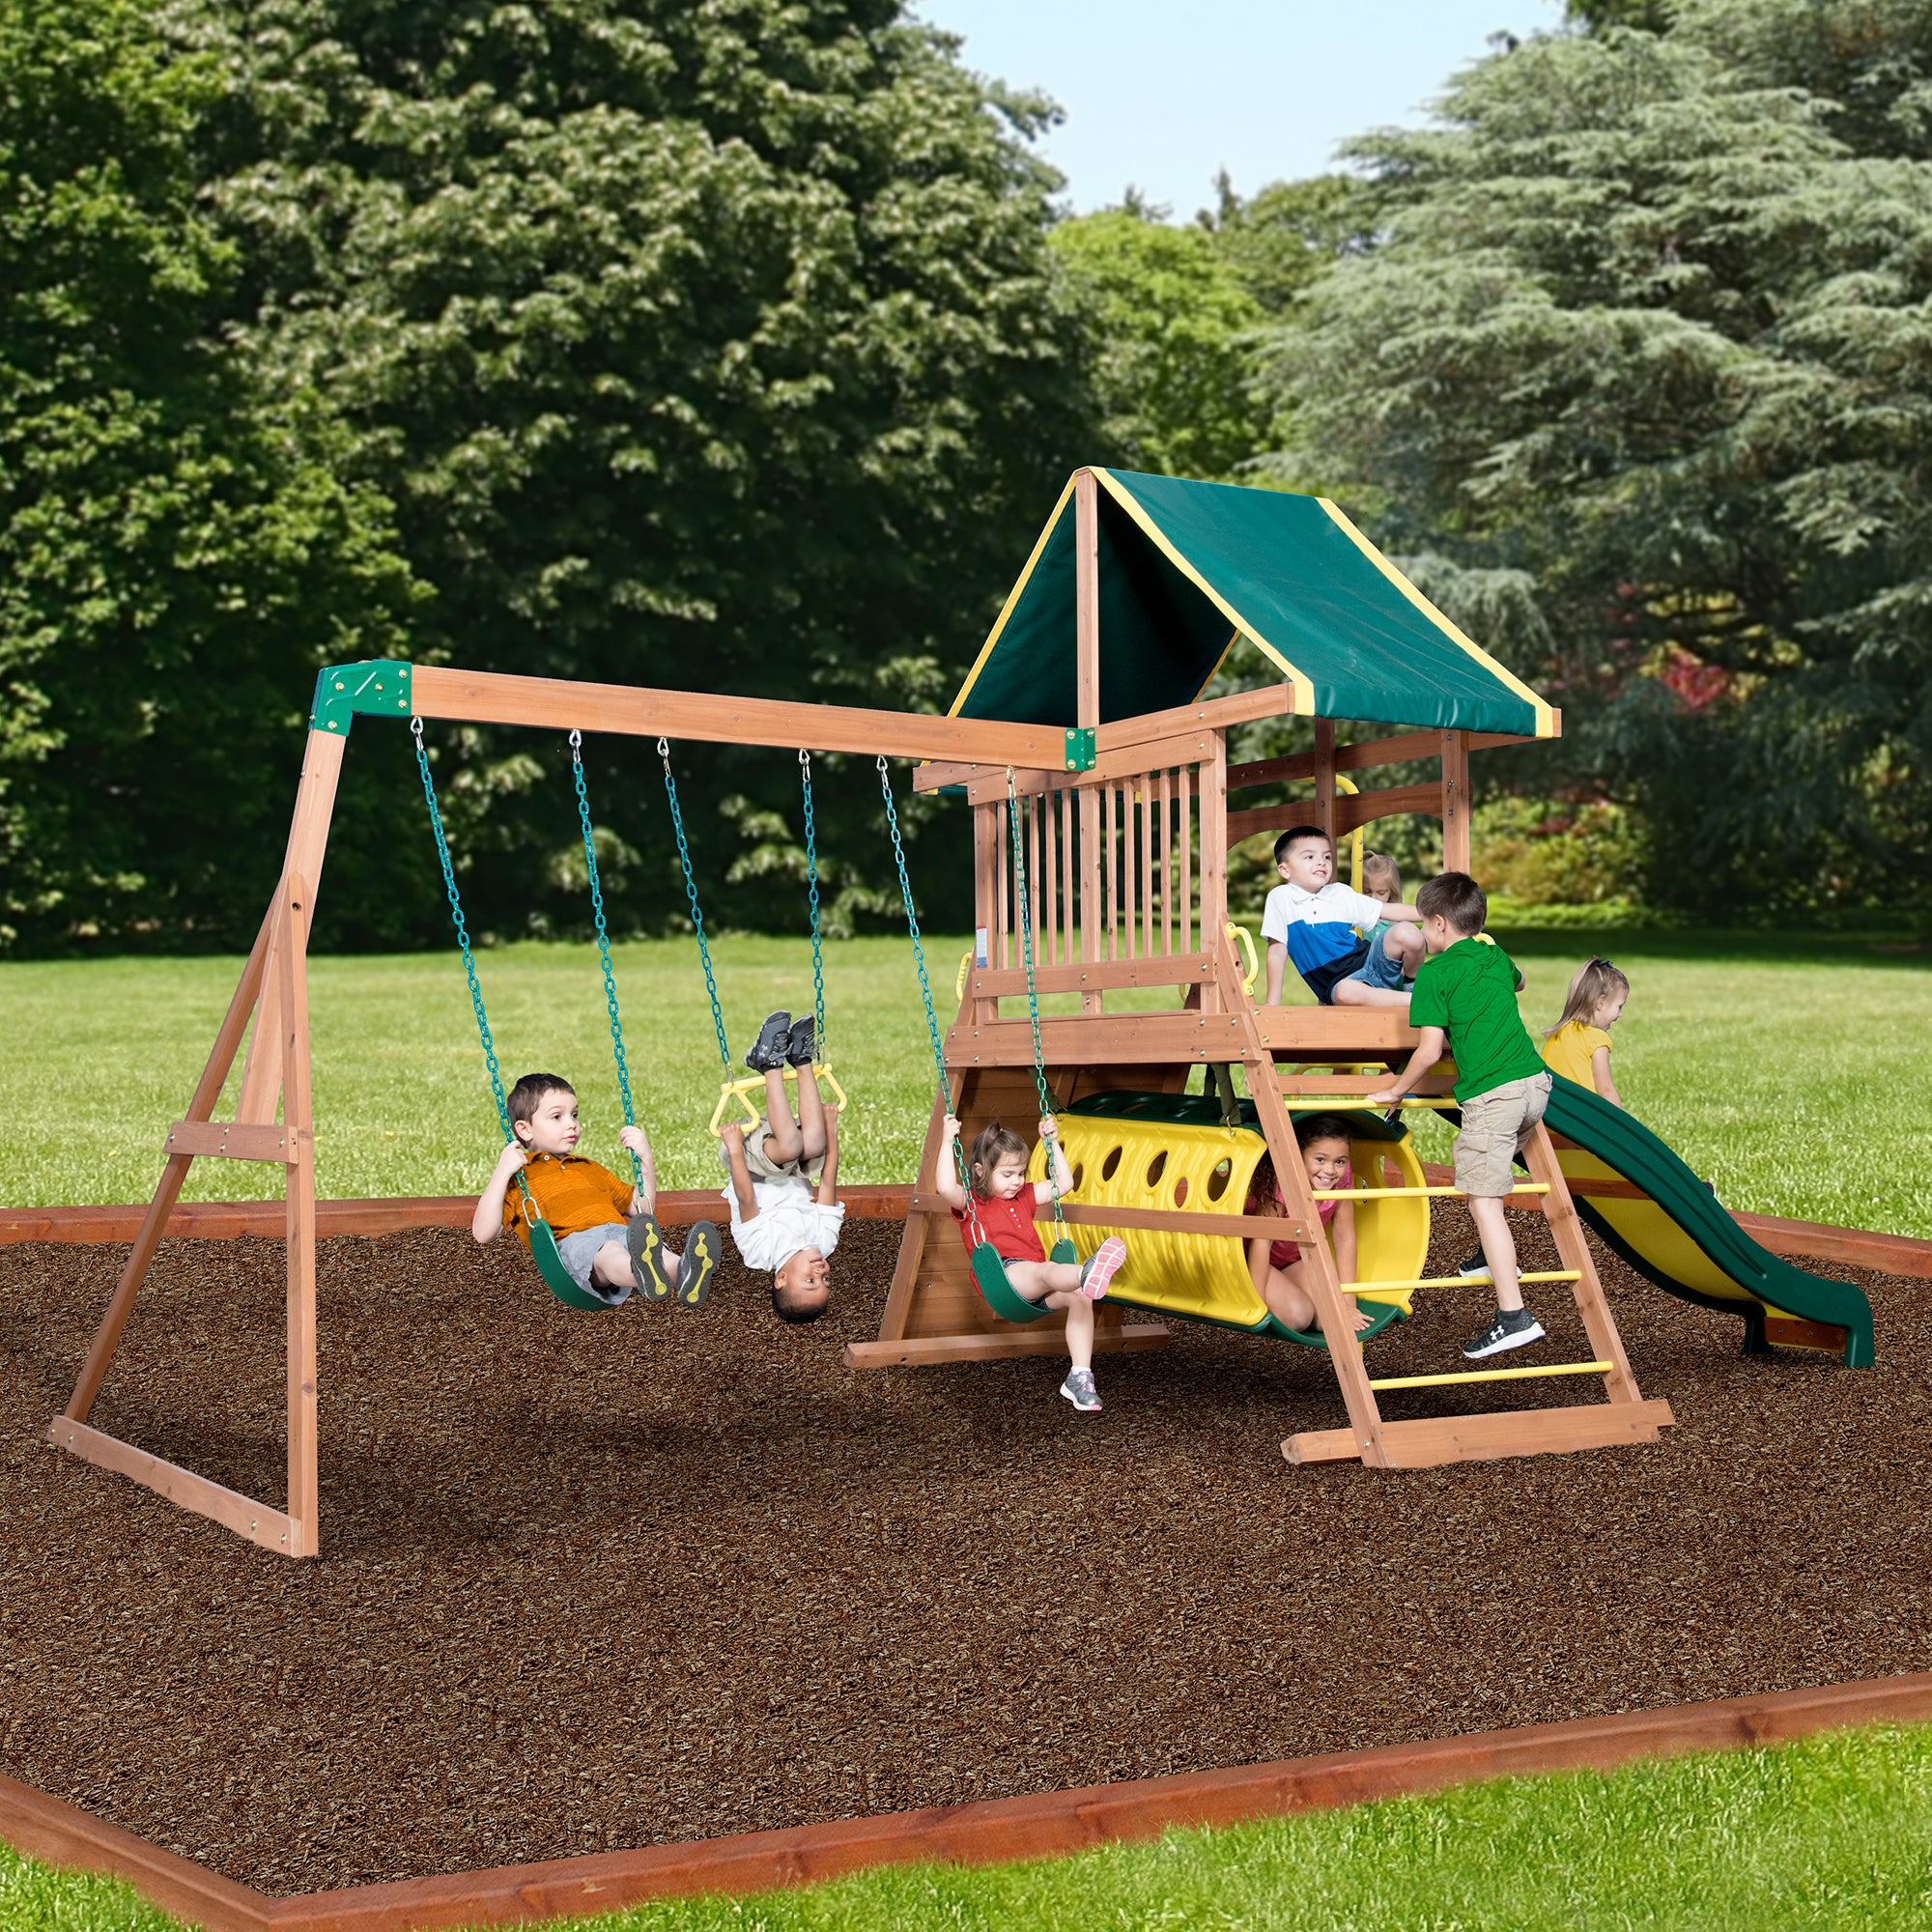 timber designs swing backyard creativecedardesigns creative reviews baby valley set kids discovery somerset wood wayfair pdx cedar